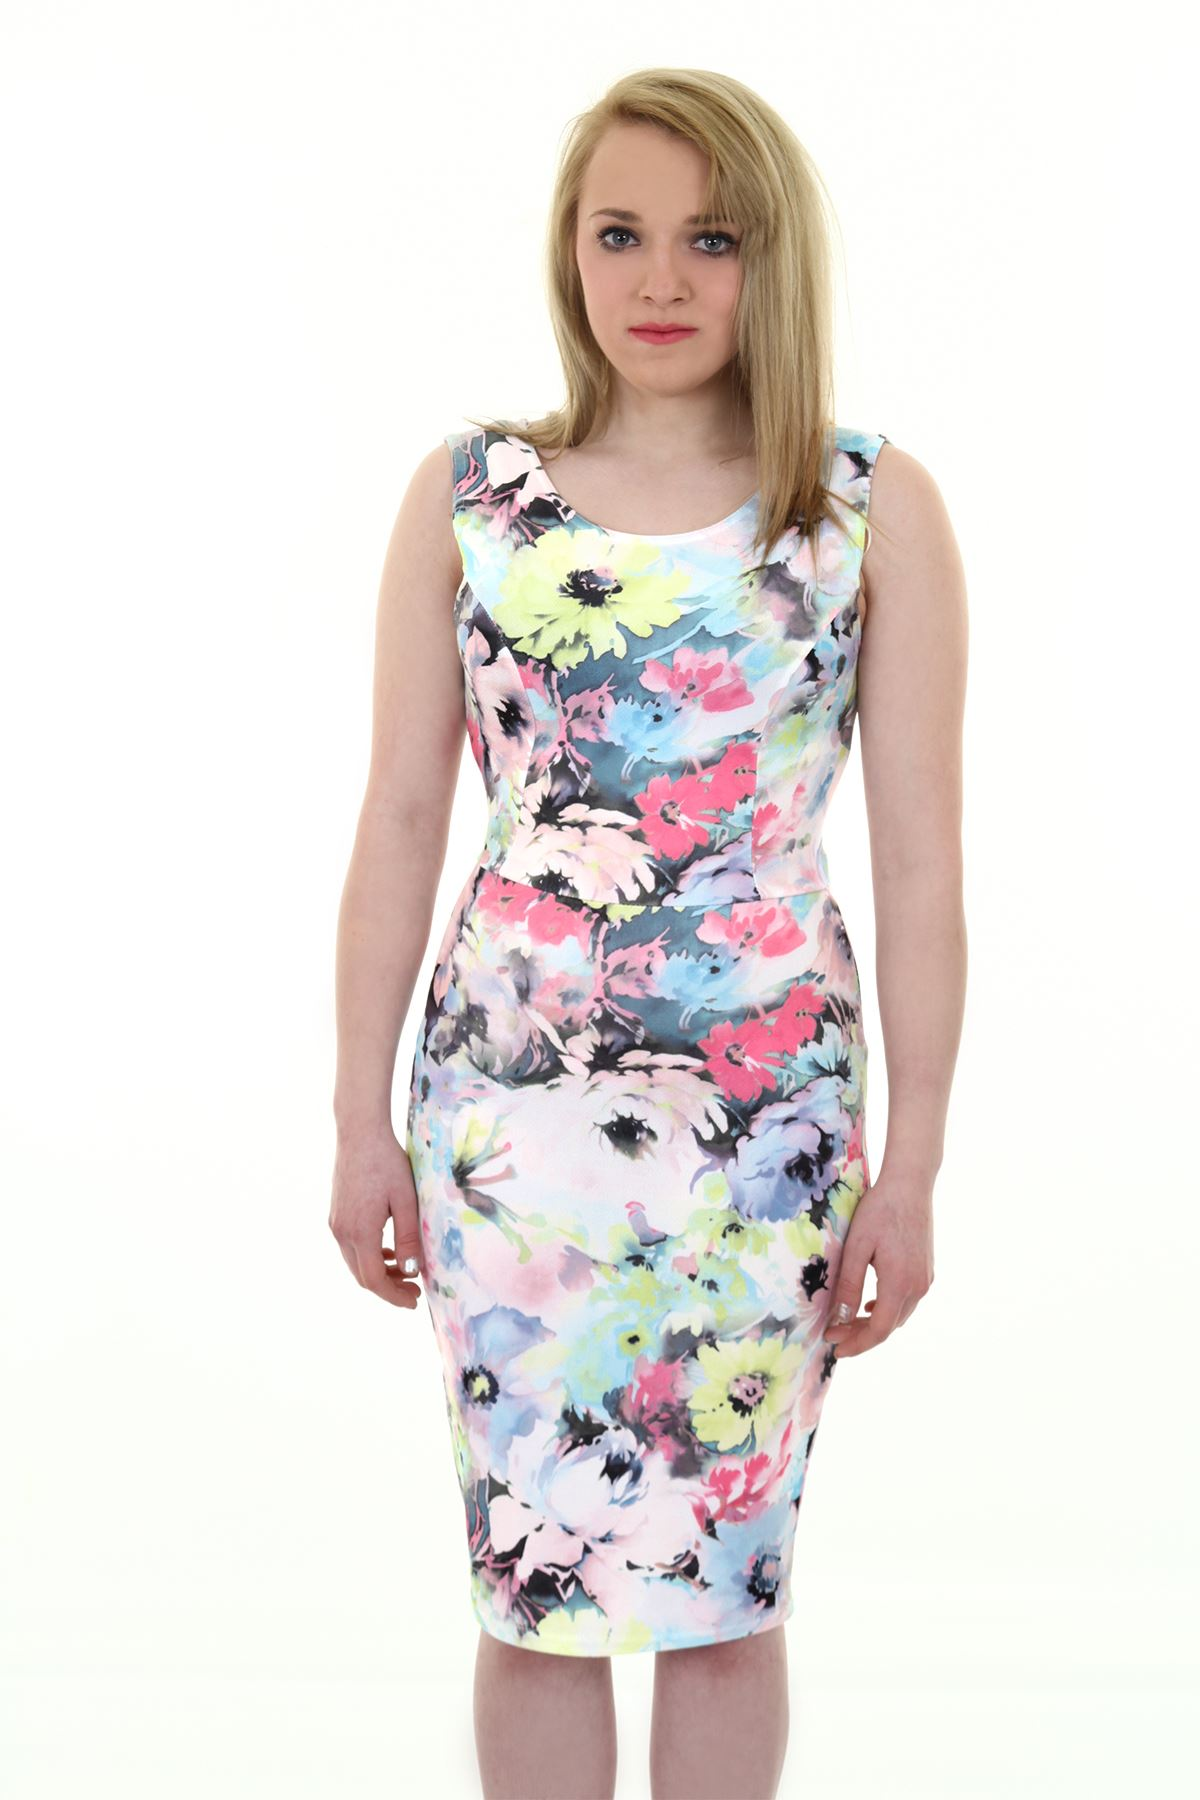 There are soft pastel pink dresses, buttery yellow pastel dresses, pastel lavender dresses, and many more designer dresses in pastel colors. At prom you will look like a spring flower in a stunning pale green or coral pastel prom gown.